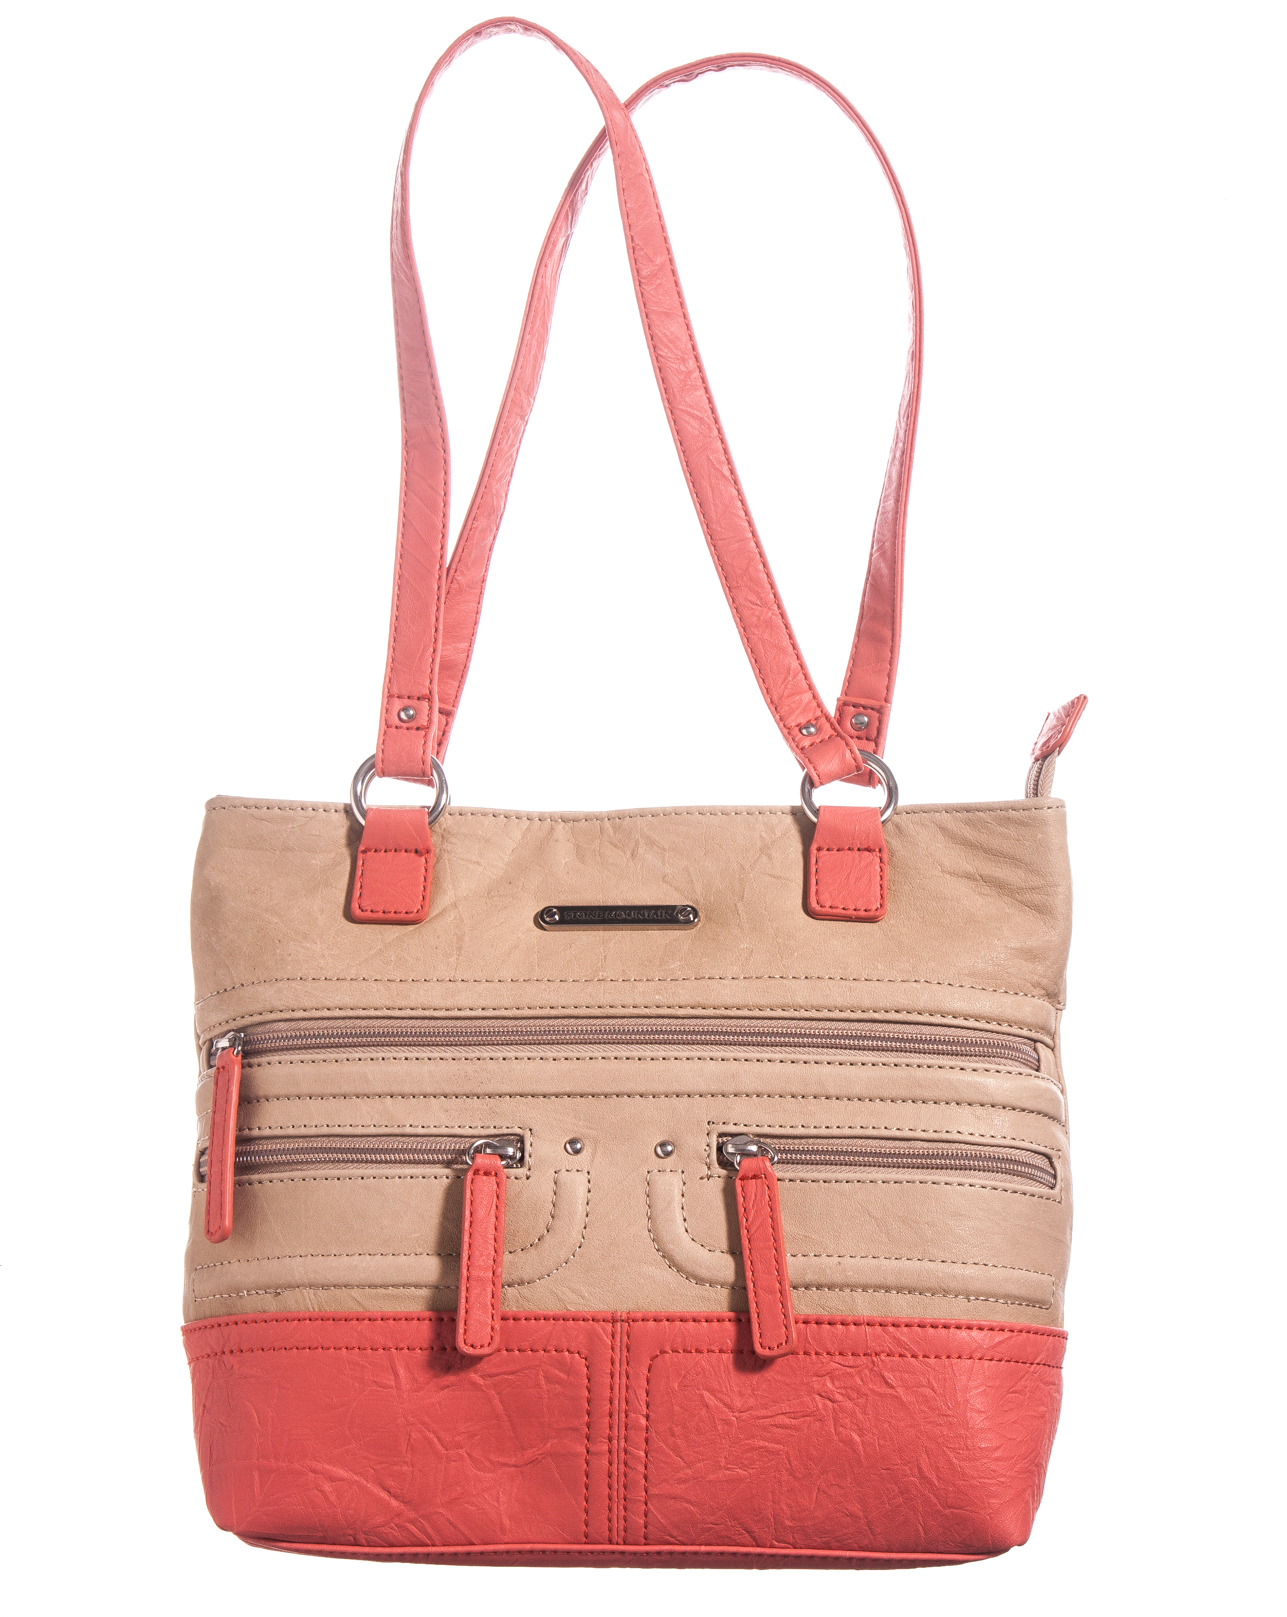 Ivory Tote